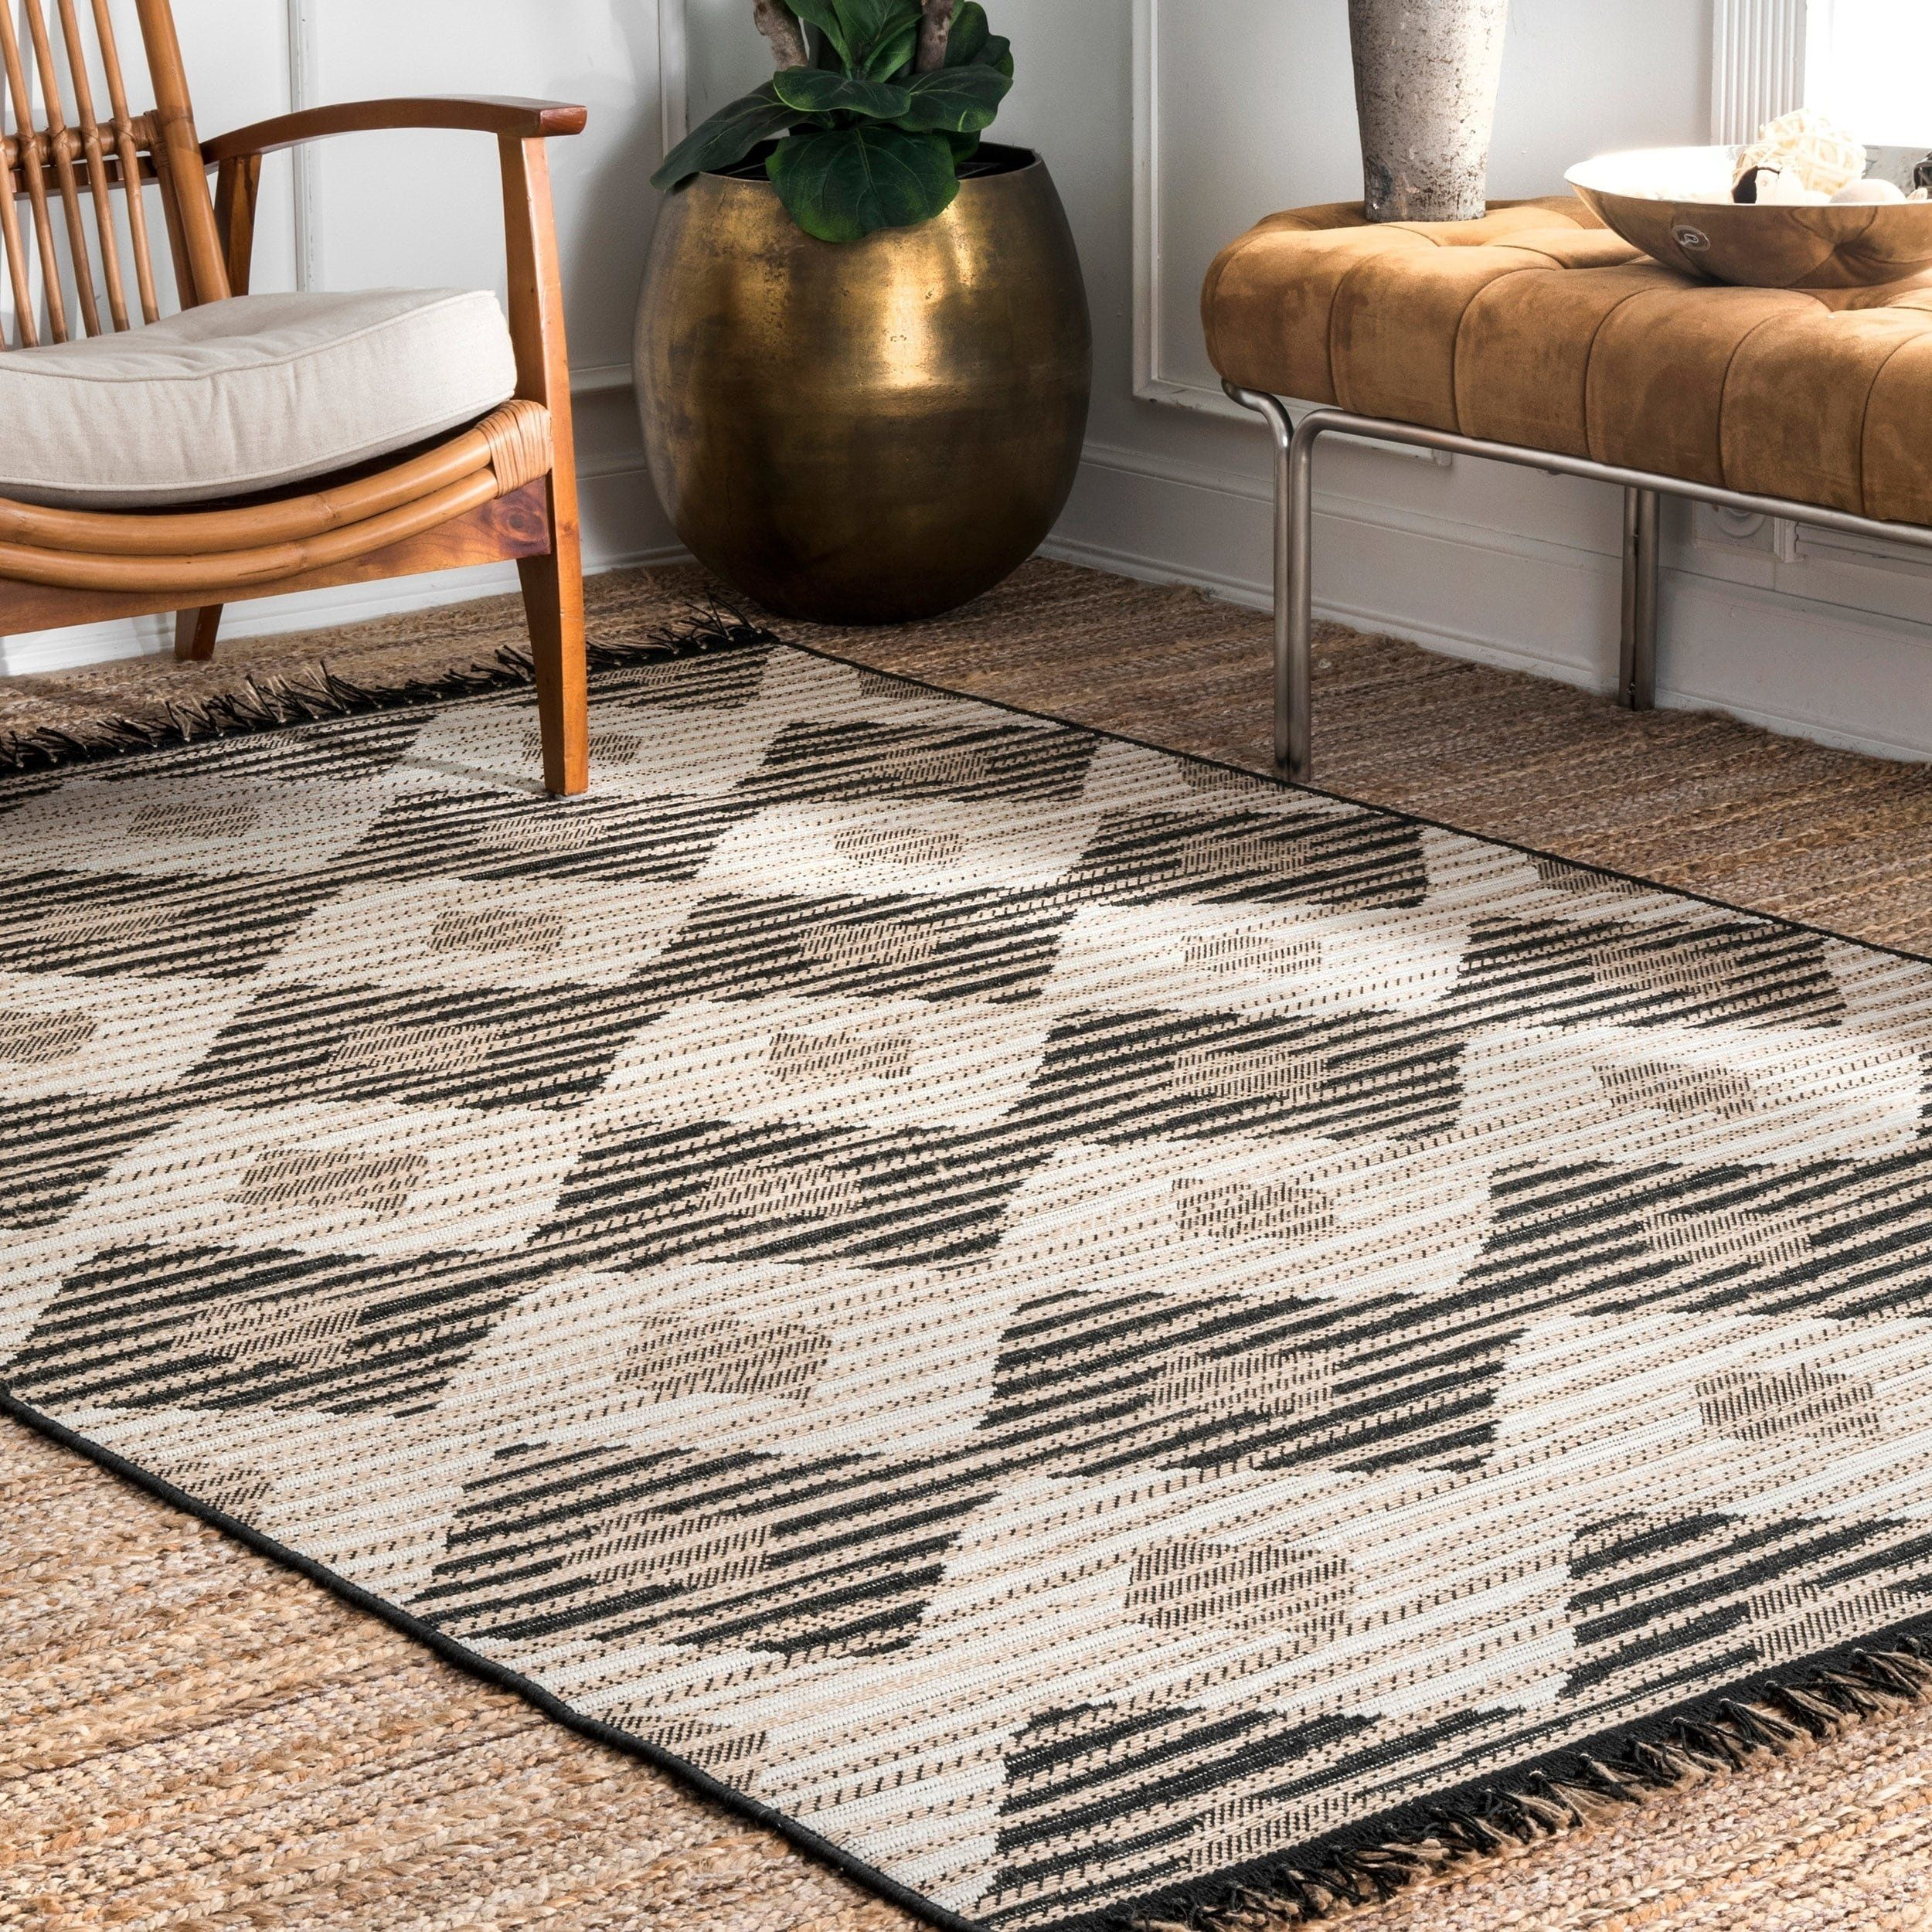 The Curated Nomad Brannan Grey Casual Indoor Outdoor Geometric Striped Diamond Area Rug 7 10 X 10 10 Grey Gray In 2019 Indoor Outdoor Rugs Outdoor Rugs Rugs